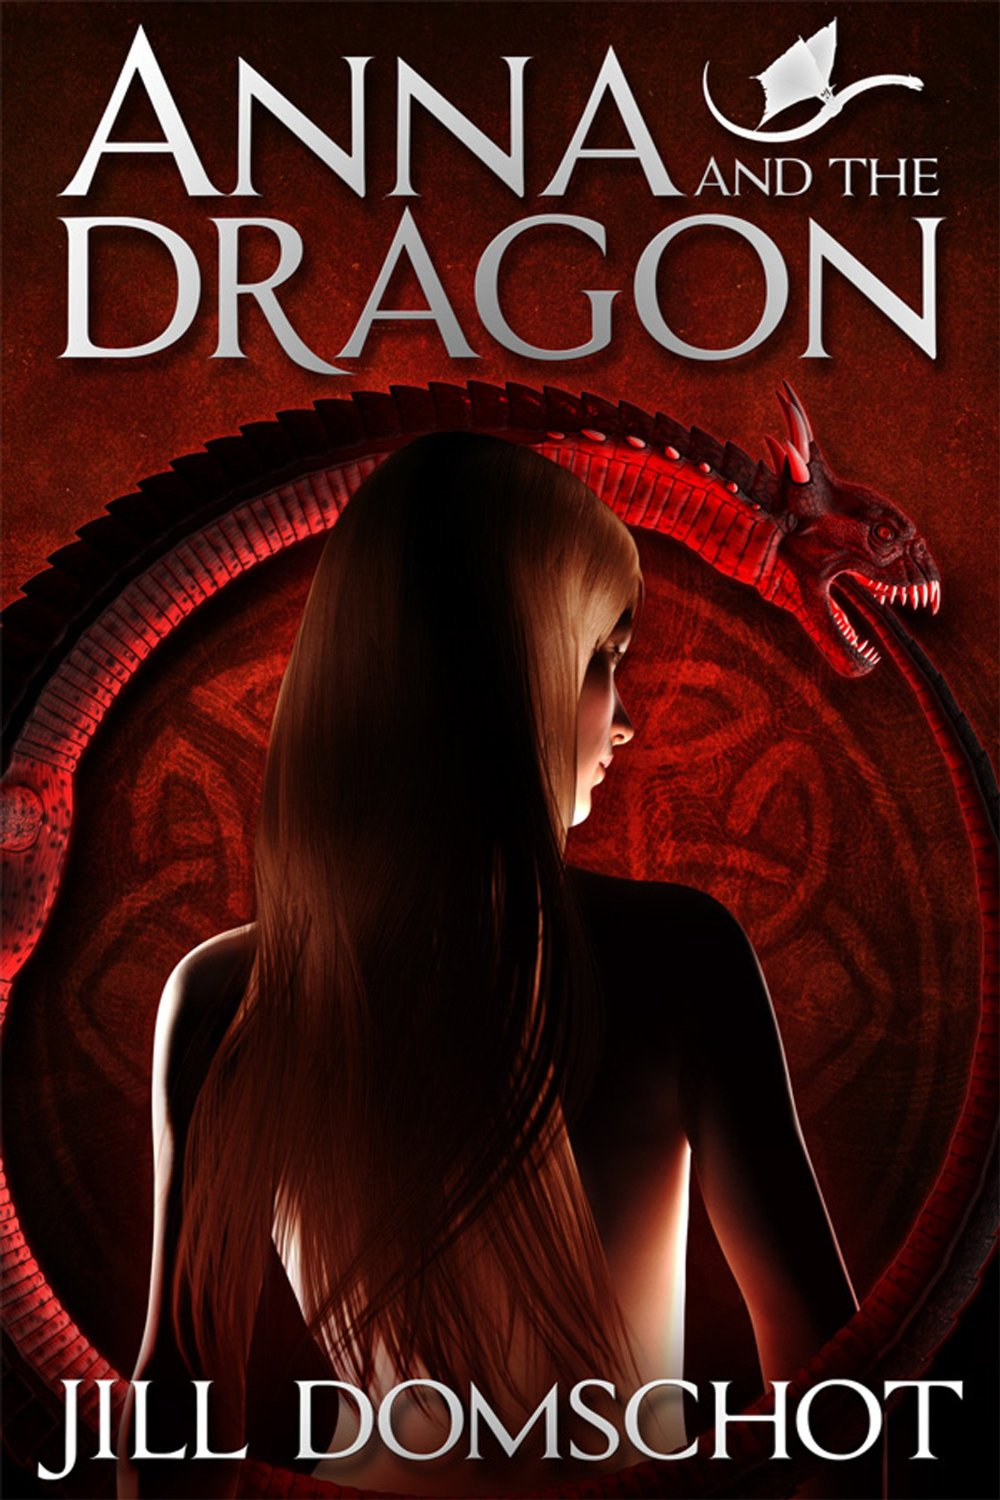 Anna and the Dragon by Jill Domschot